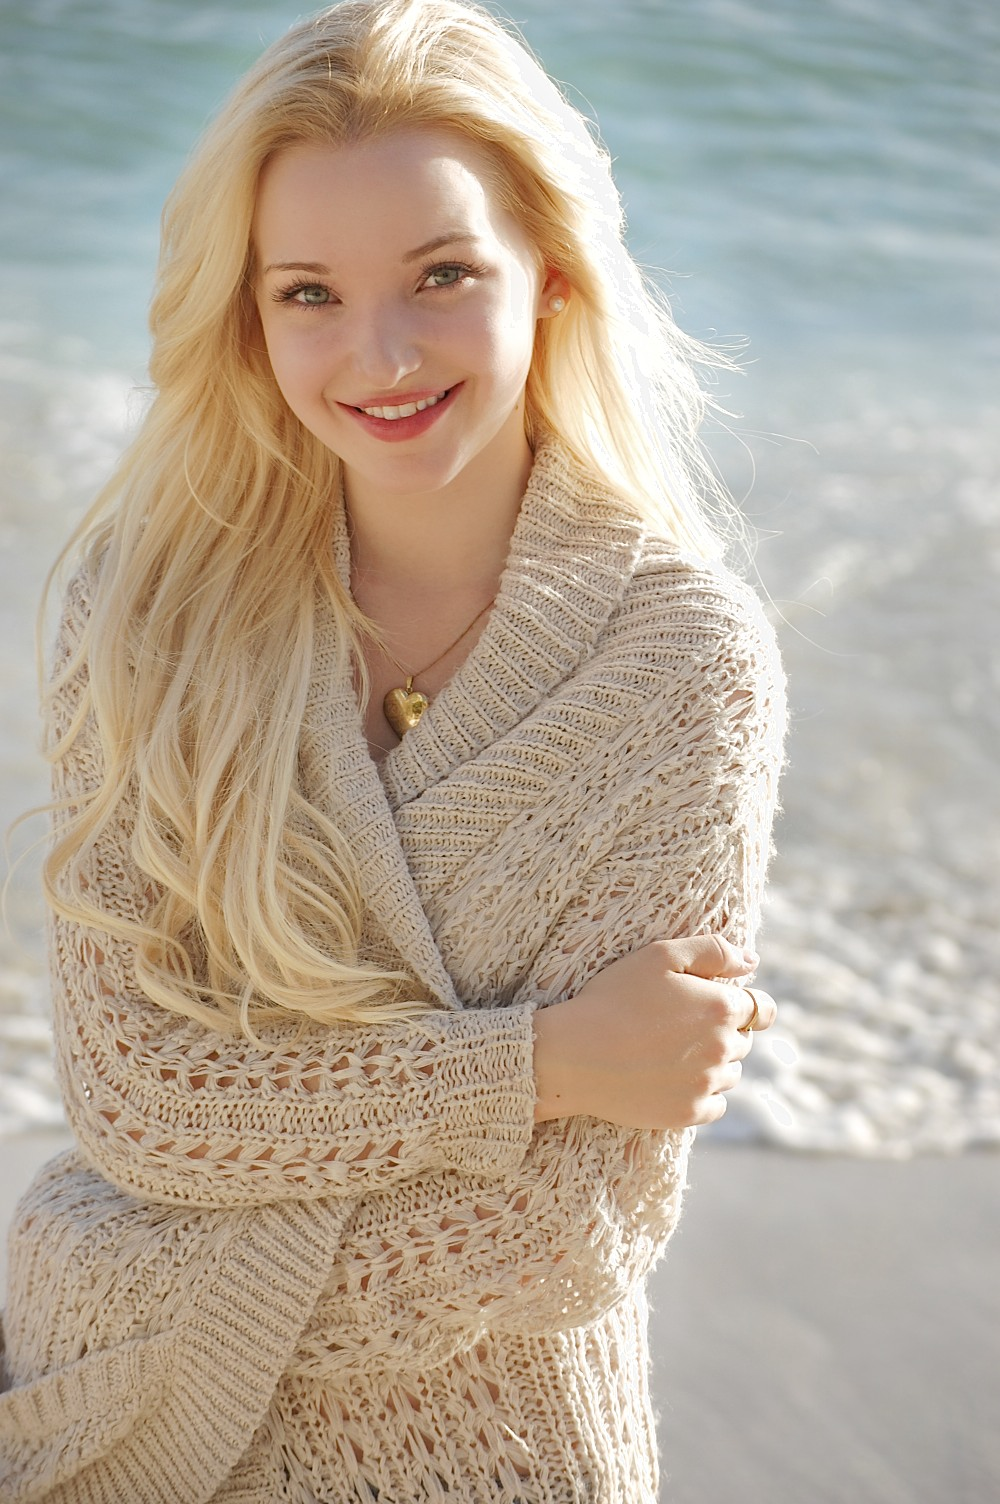 dove-cameron-hot